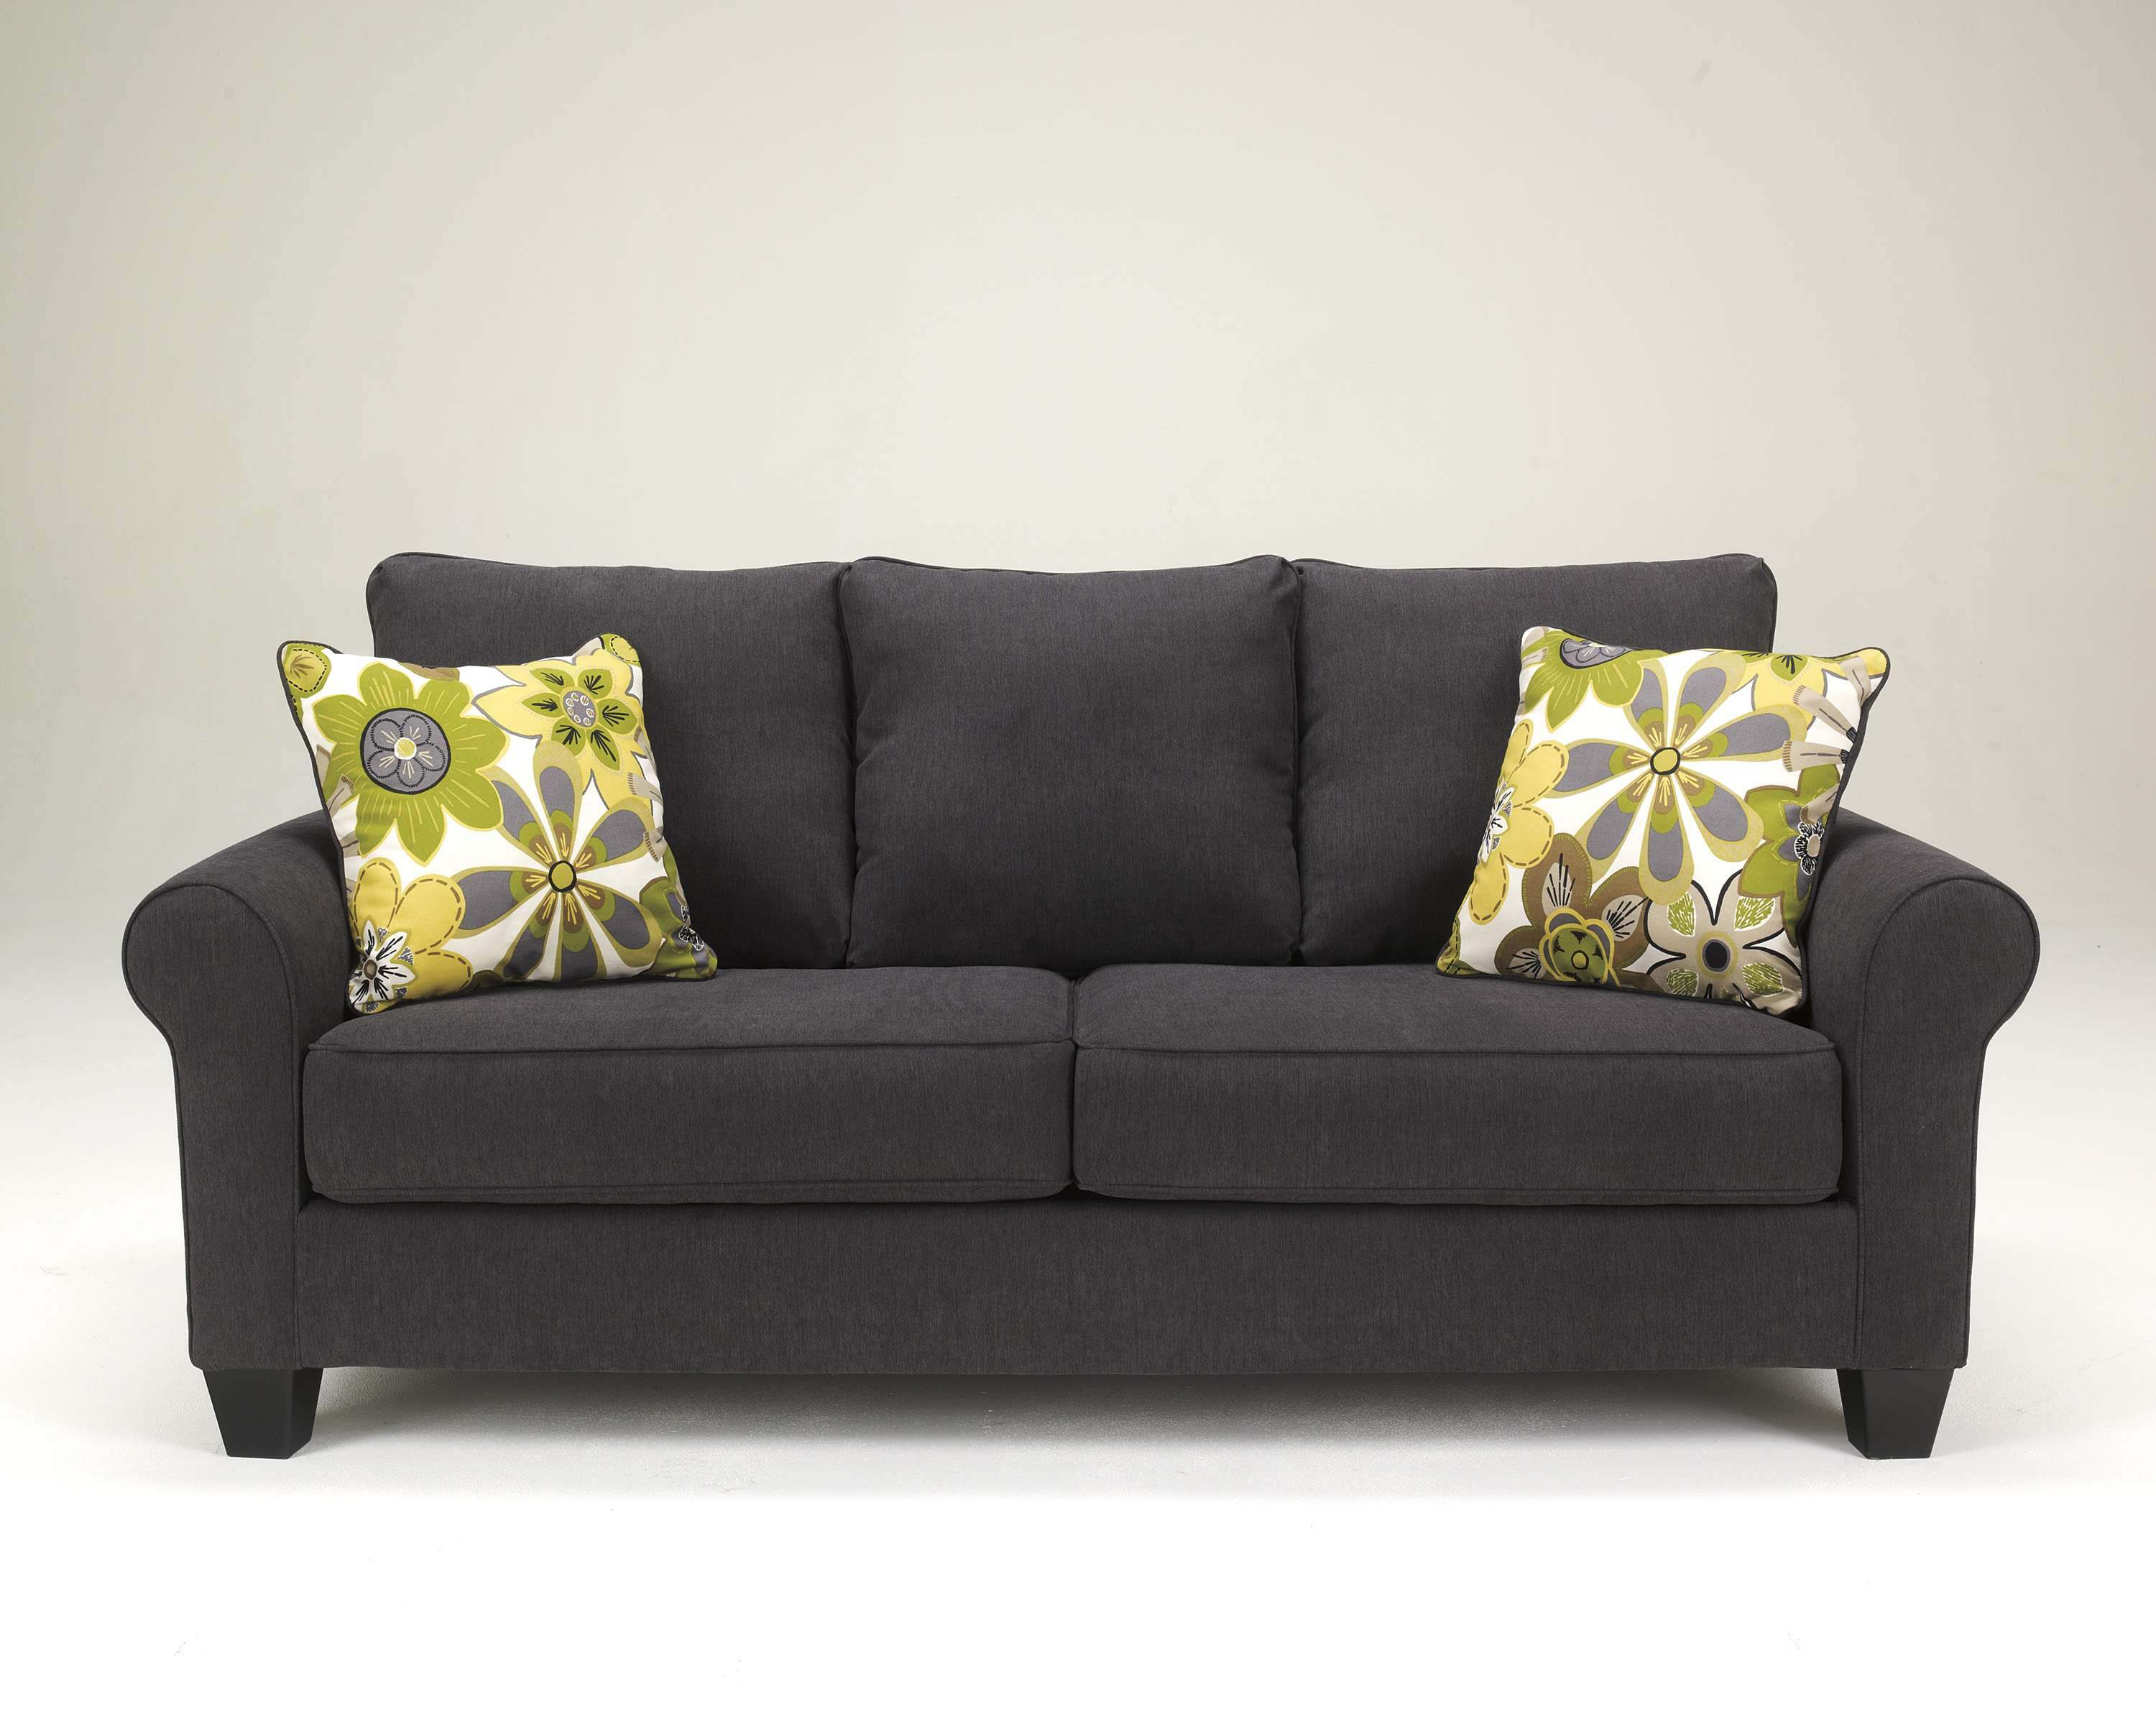 Home Living Room Stationary Sofa Nolana